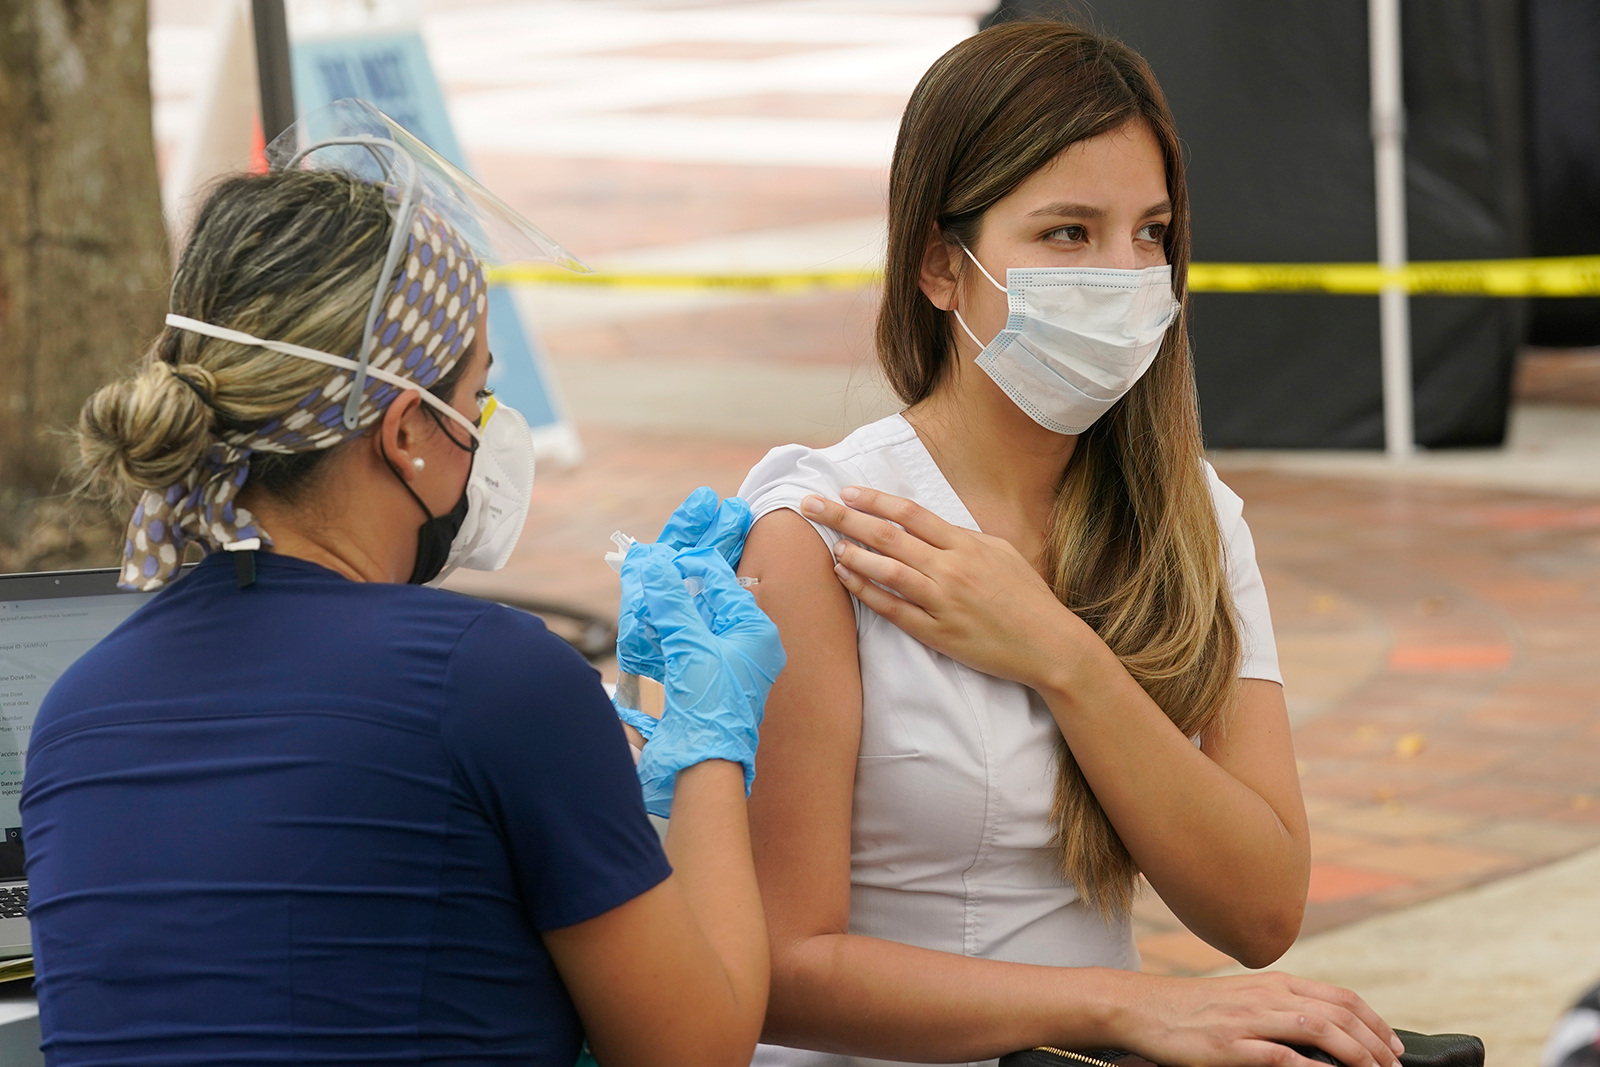 Maria Oramas gets the first dose of the Pzifer Covid-19 vaccine on Monday, August 9, in Miami.